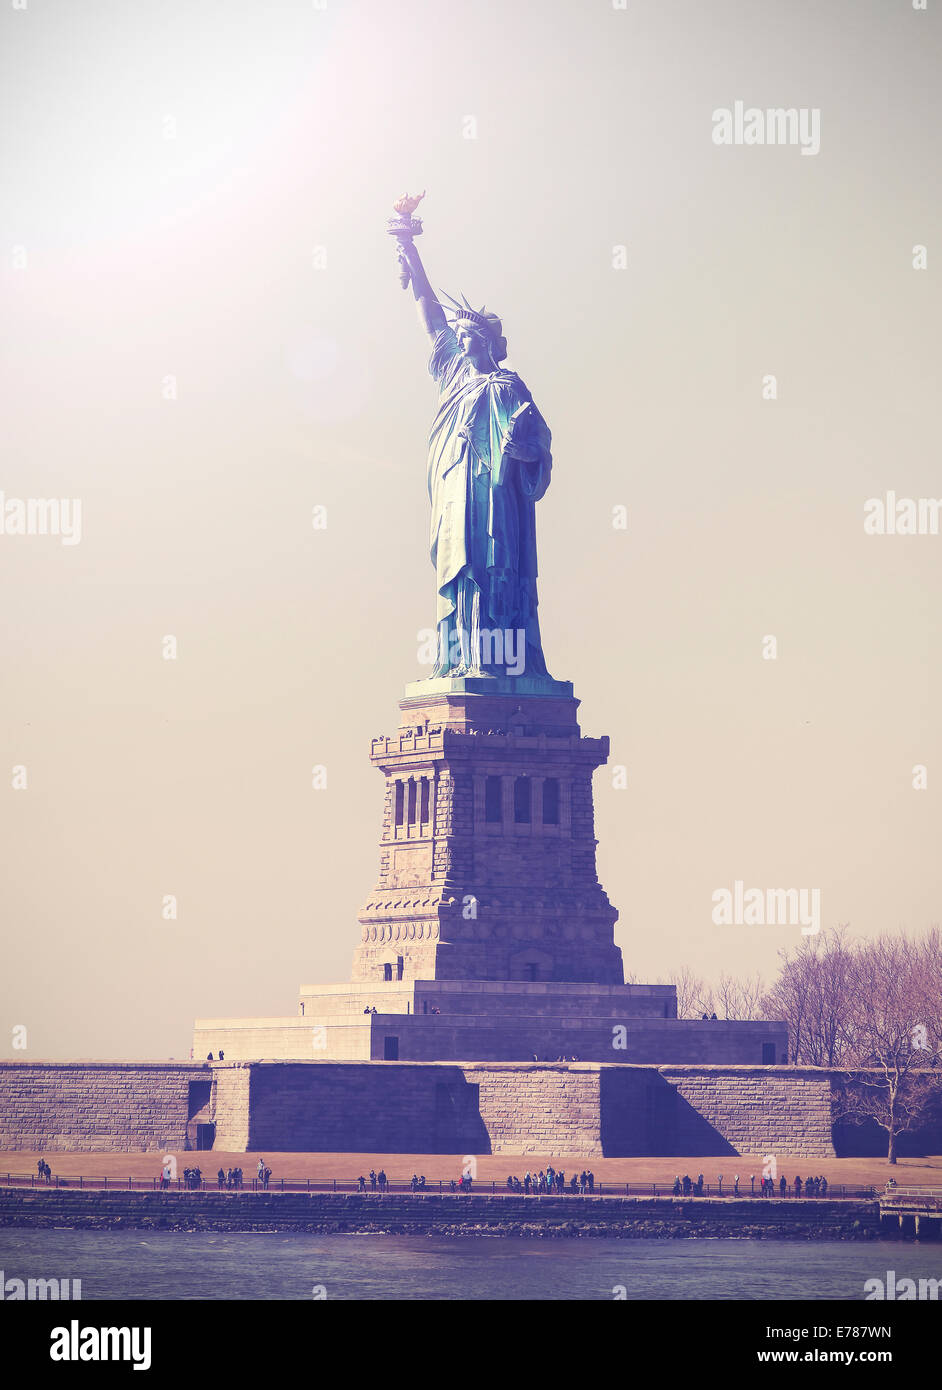 Vintage photo de Statue de la liberté, NEW YORK, USA. Photo Stock